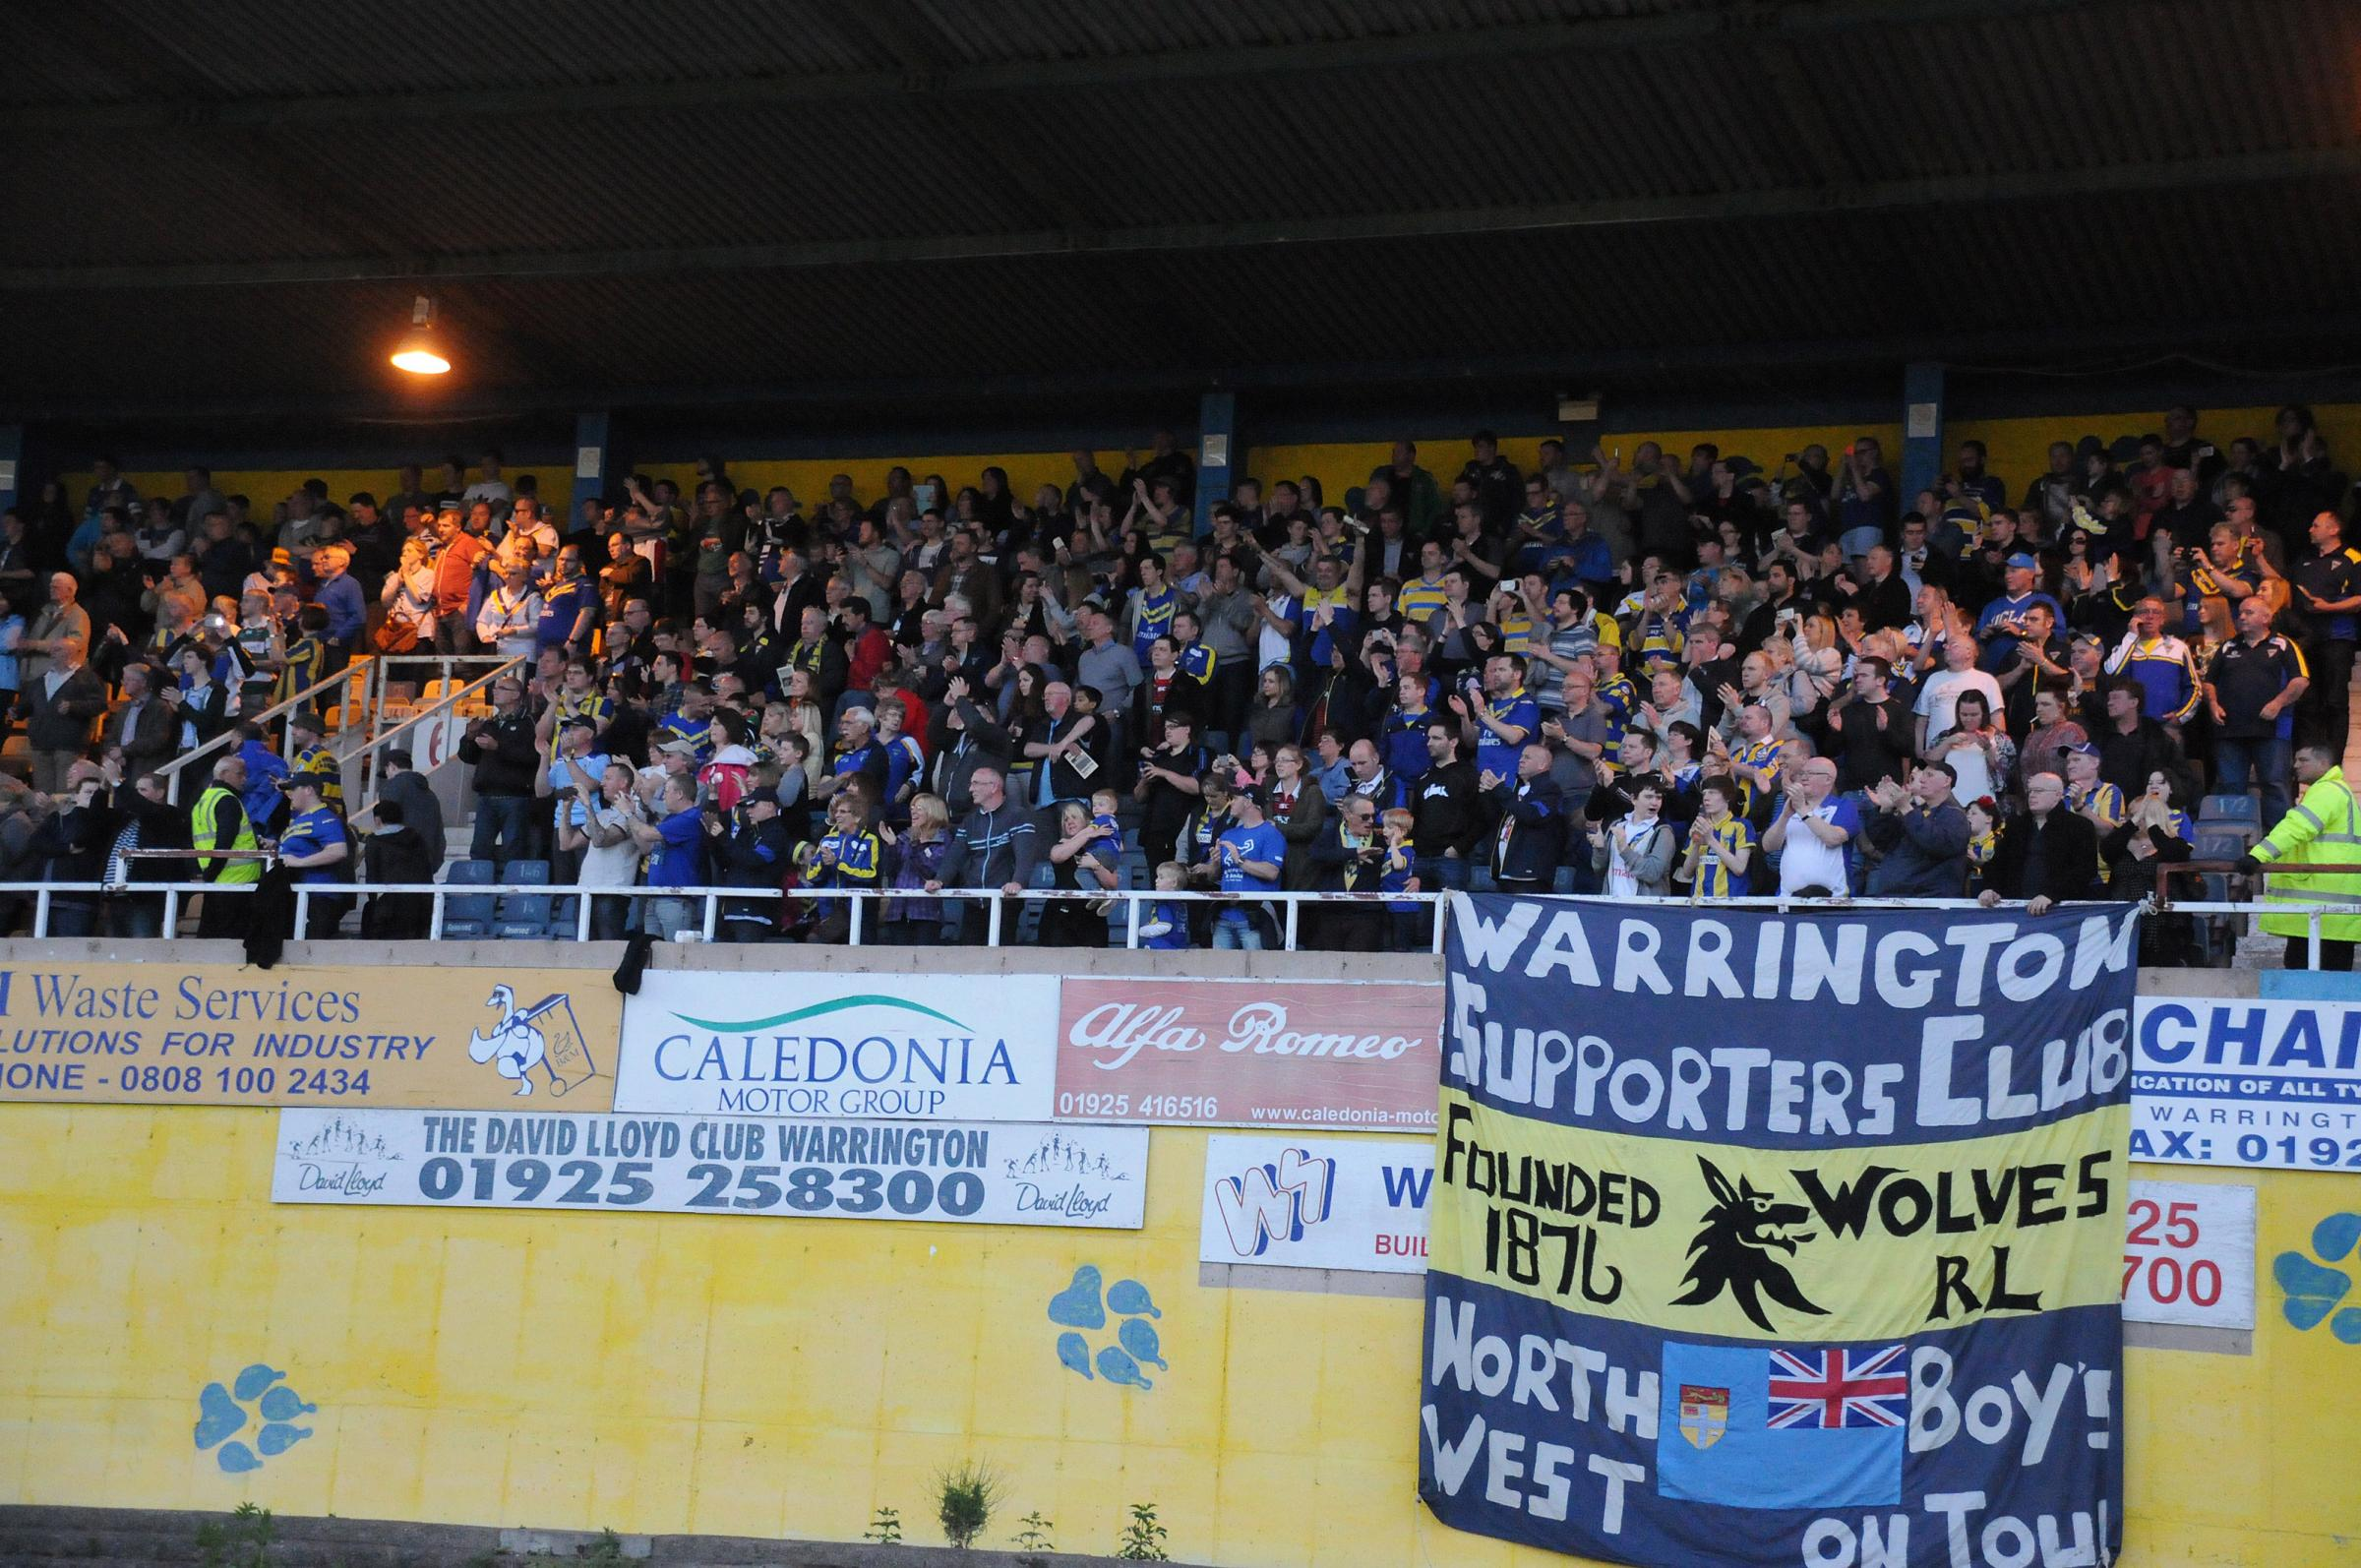 PICS: Wolves fans say final farewell to Wilderspool